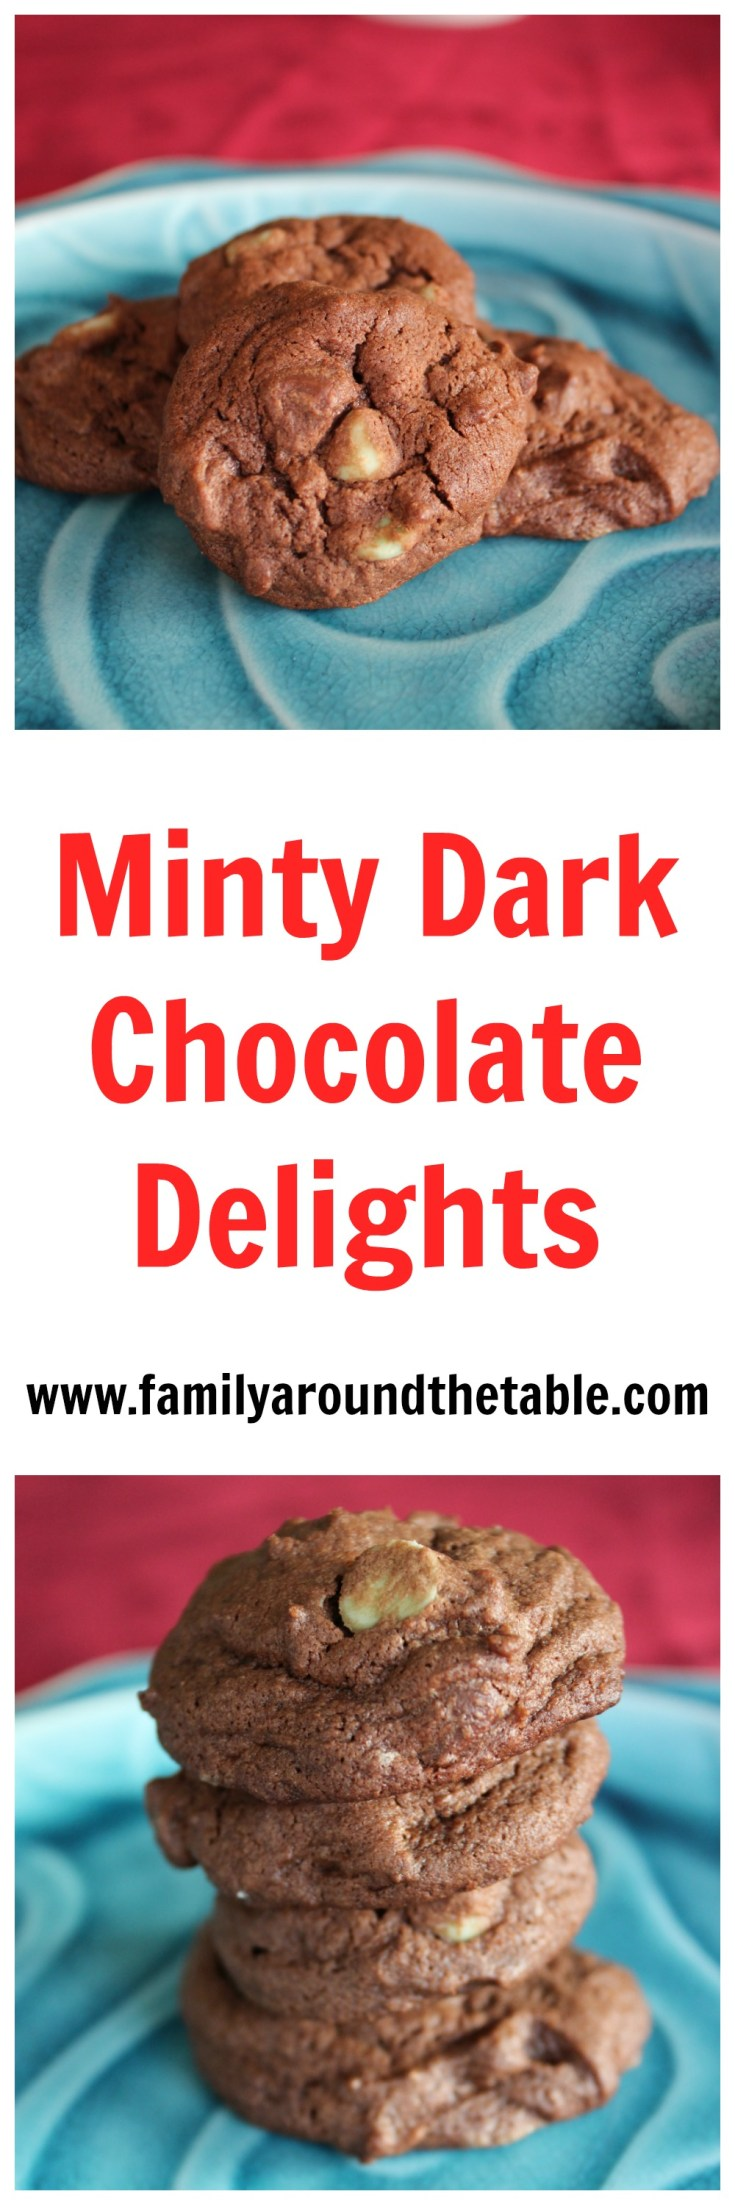 Minty Dark Chocolate Delights will be a hit this holiday season.